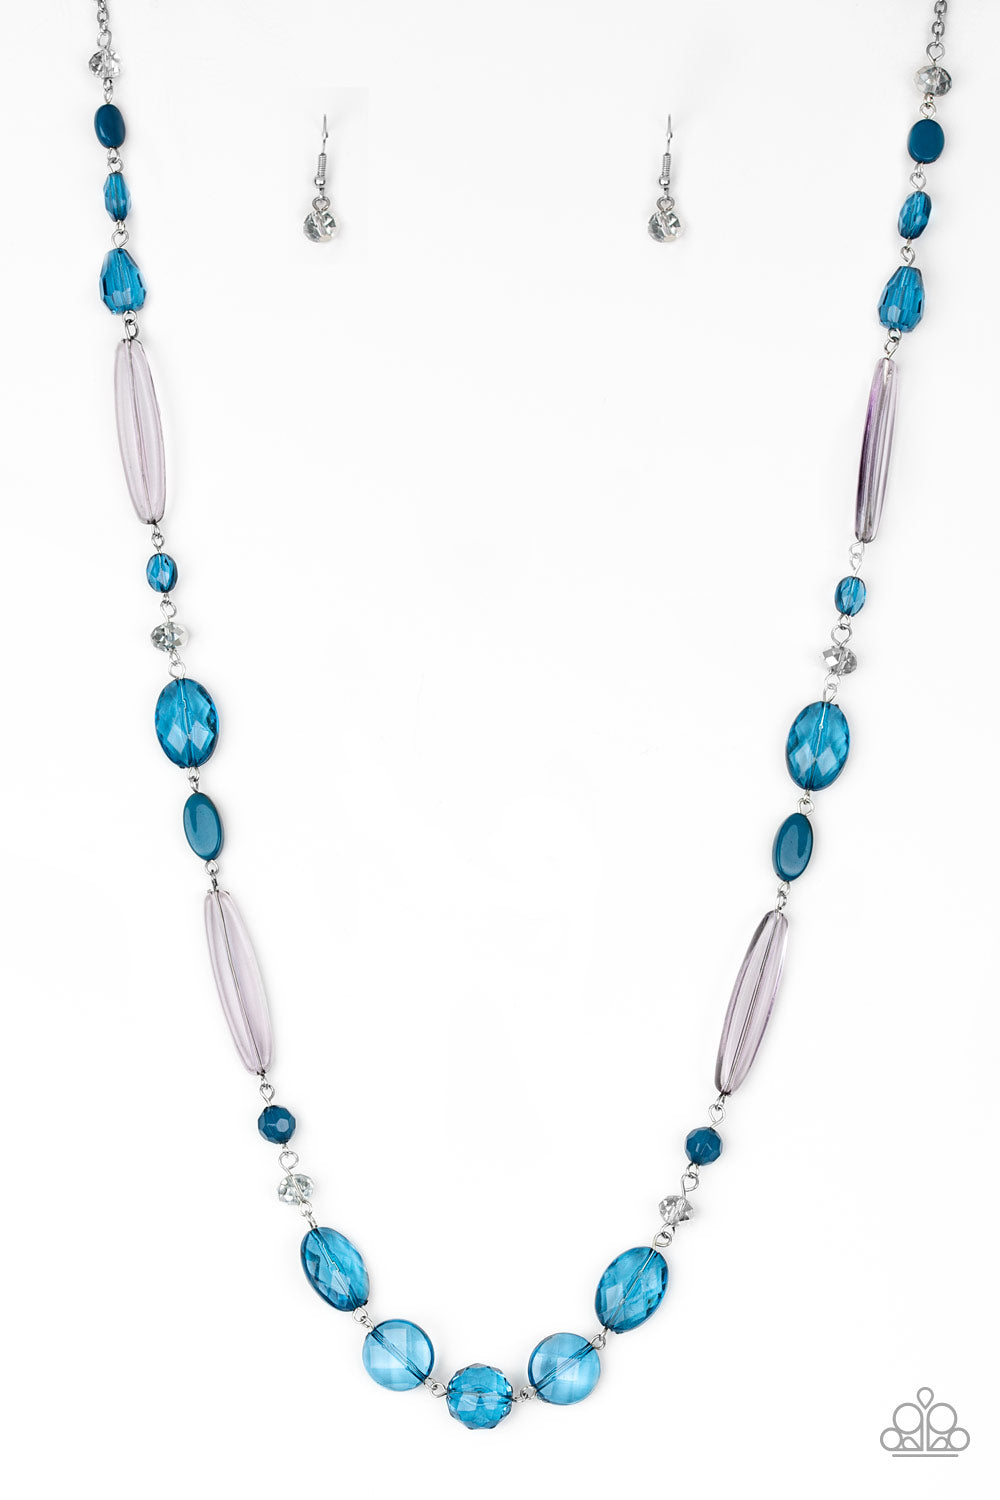 Paparazzi Accessories Quite Quintessence - Blue Necklace - Be Adored Jewelry